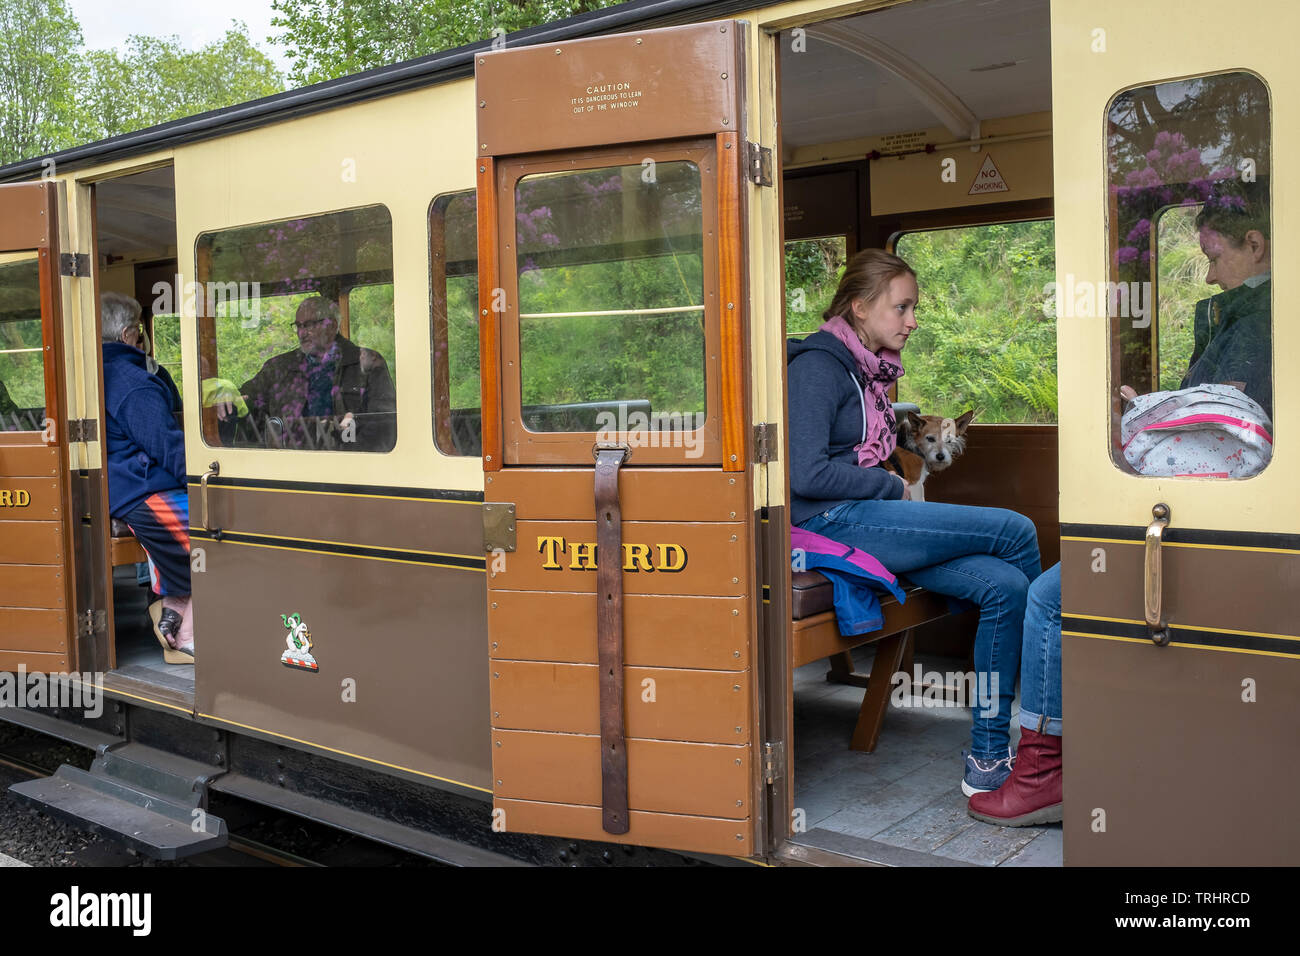 Tourists and dog, doggy,Third Class carriages on platform at Devil's Bridge Station,Vale of Rheidol Steam Railway, near Abertsywyth, Ceredigion, Wales Stock Photo